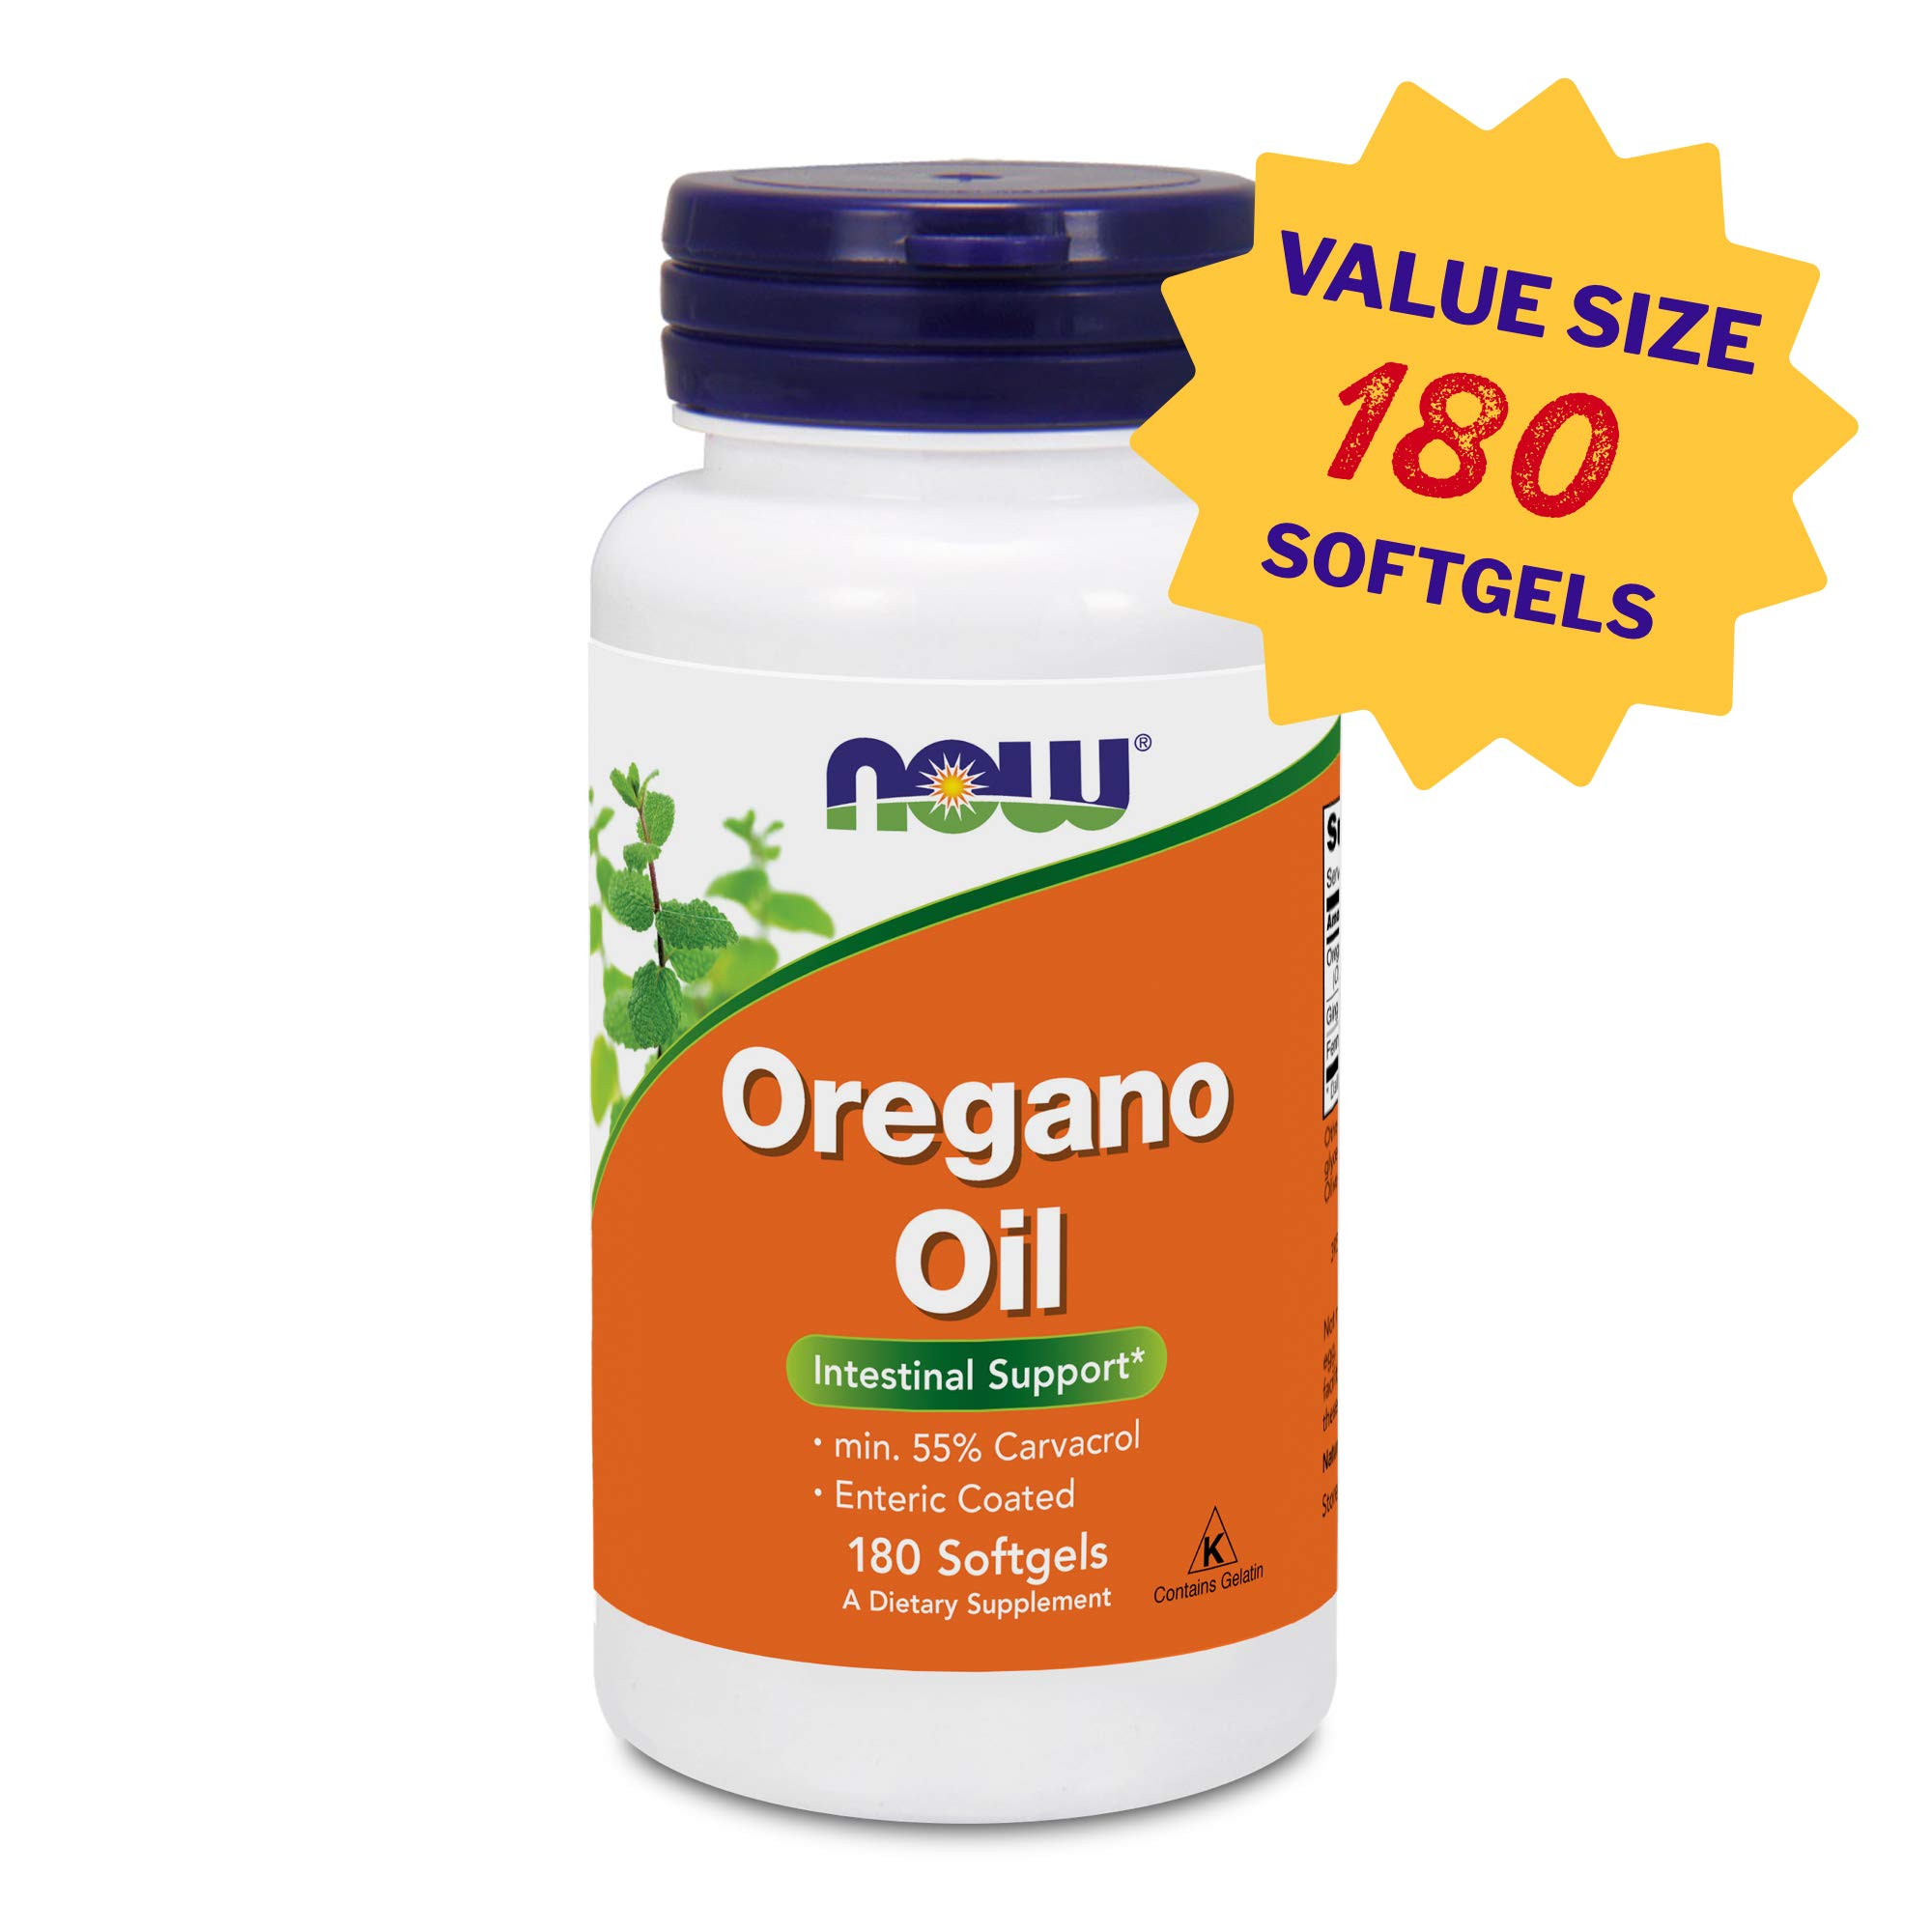 Now Foods Oregano Oil, 180 Softgels, Amazon Exclusive Value Size, High Potency Immune & Digestive Support Supplement, Natural Antibiotic – Gluten Free (180)